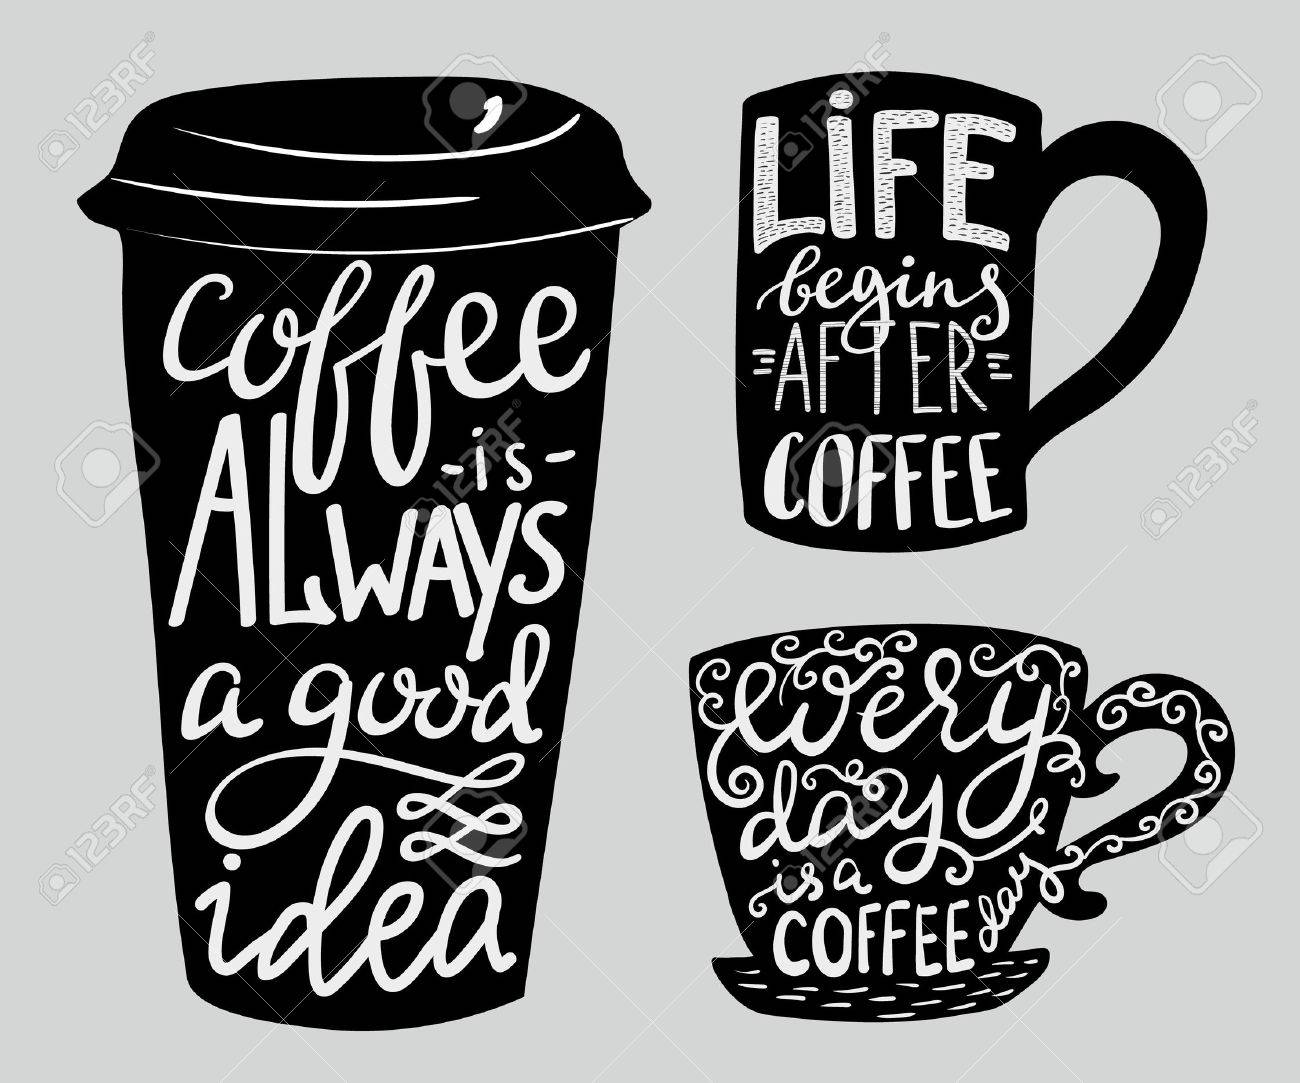 Modern calligraphy style quote about coffee. - 46642073